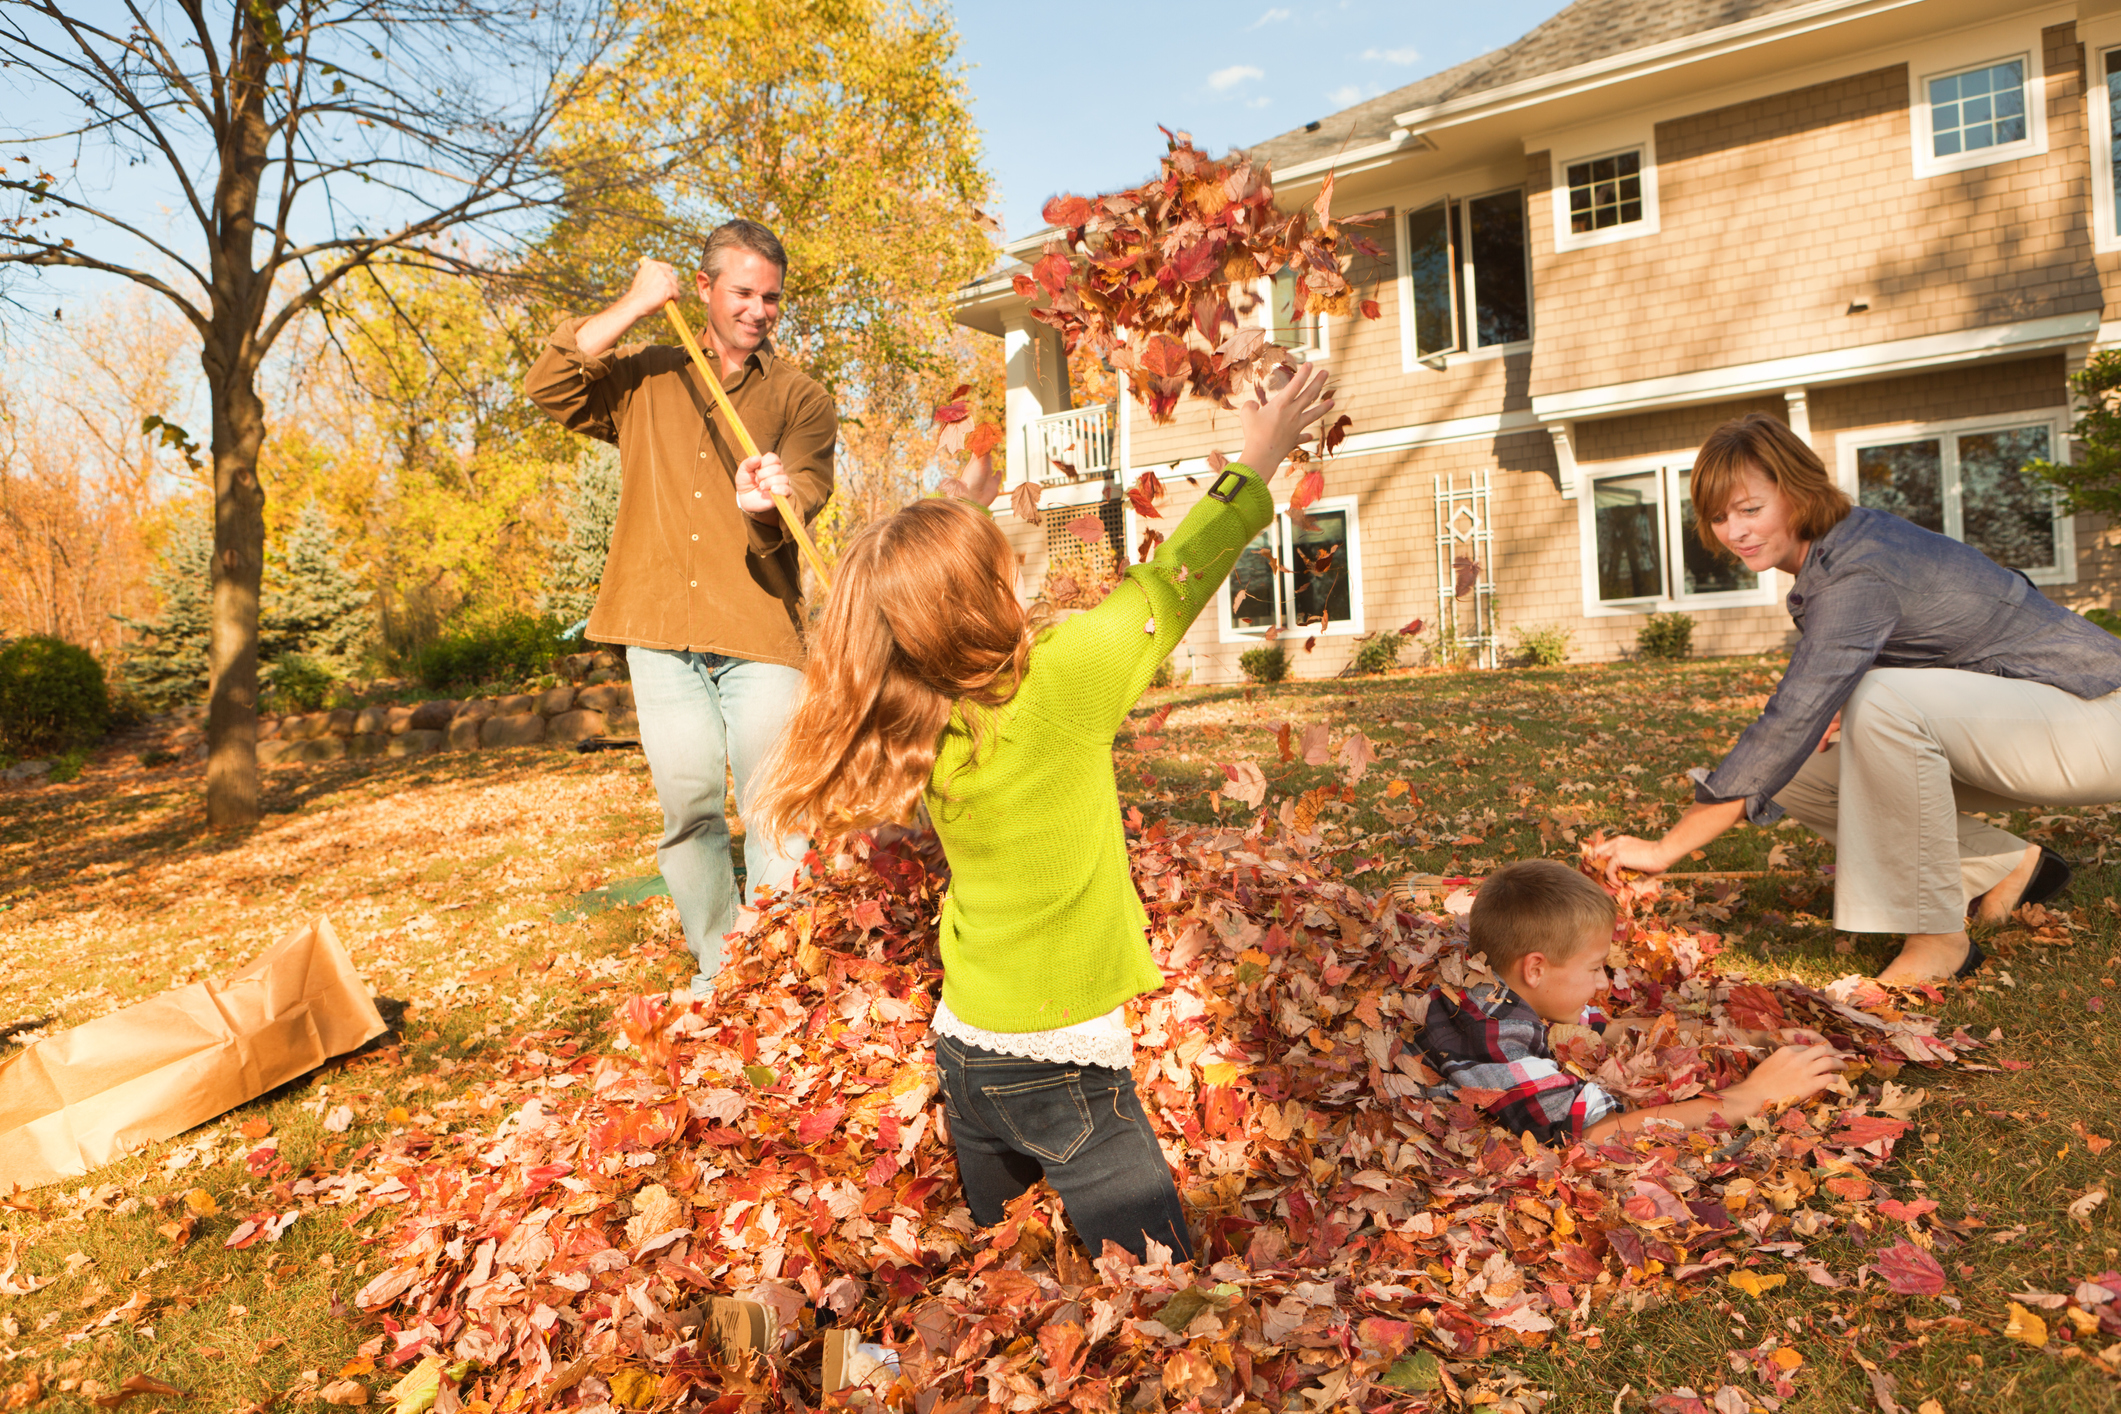 family raking leaves into a pile in the Fall